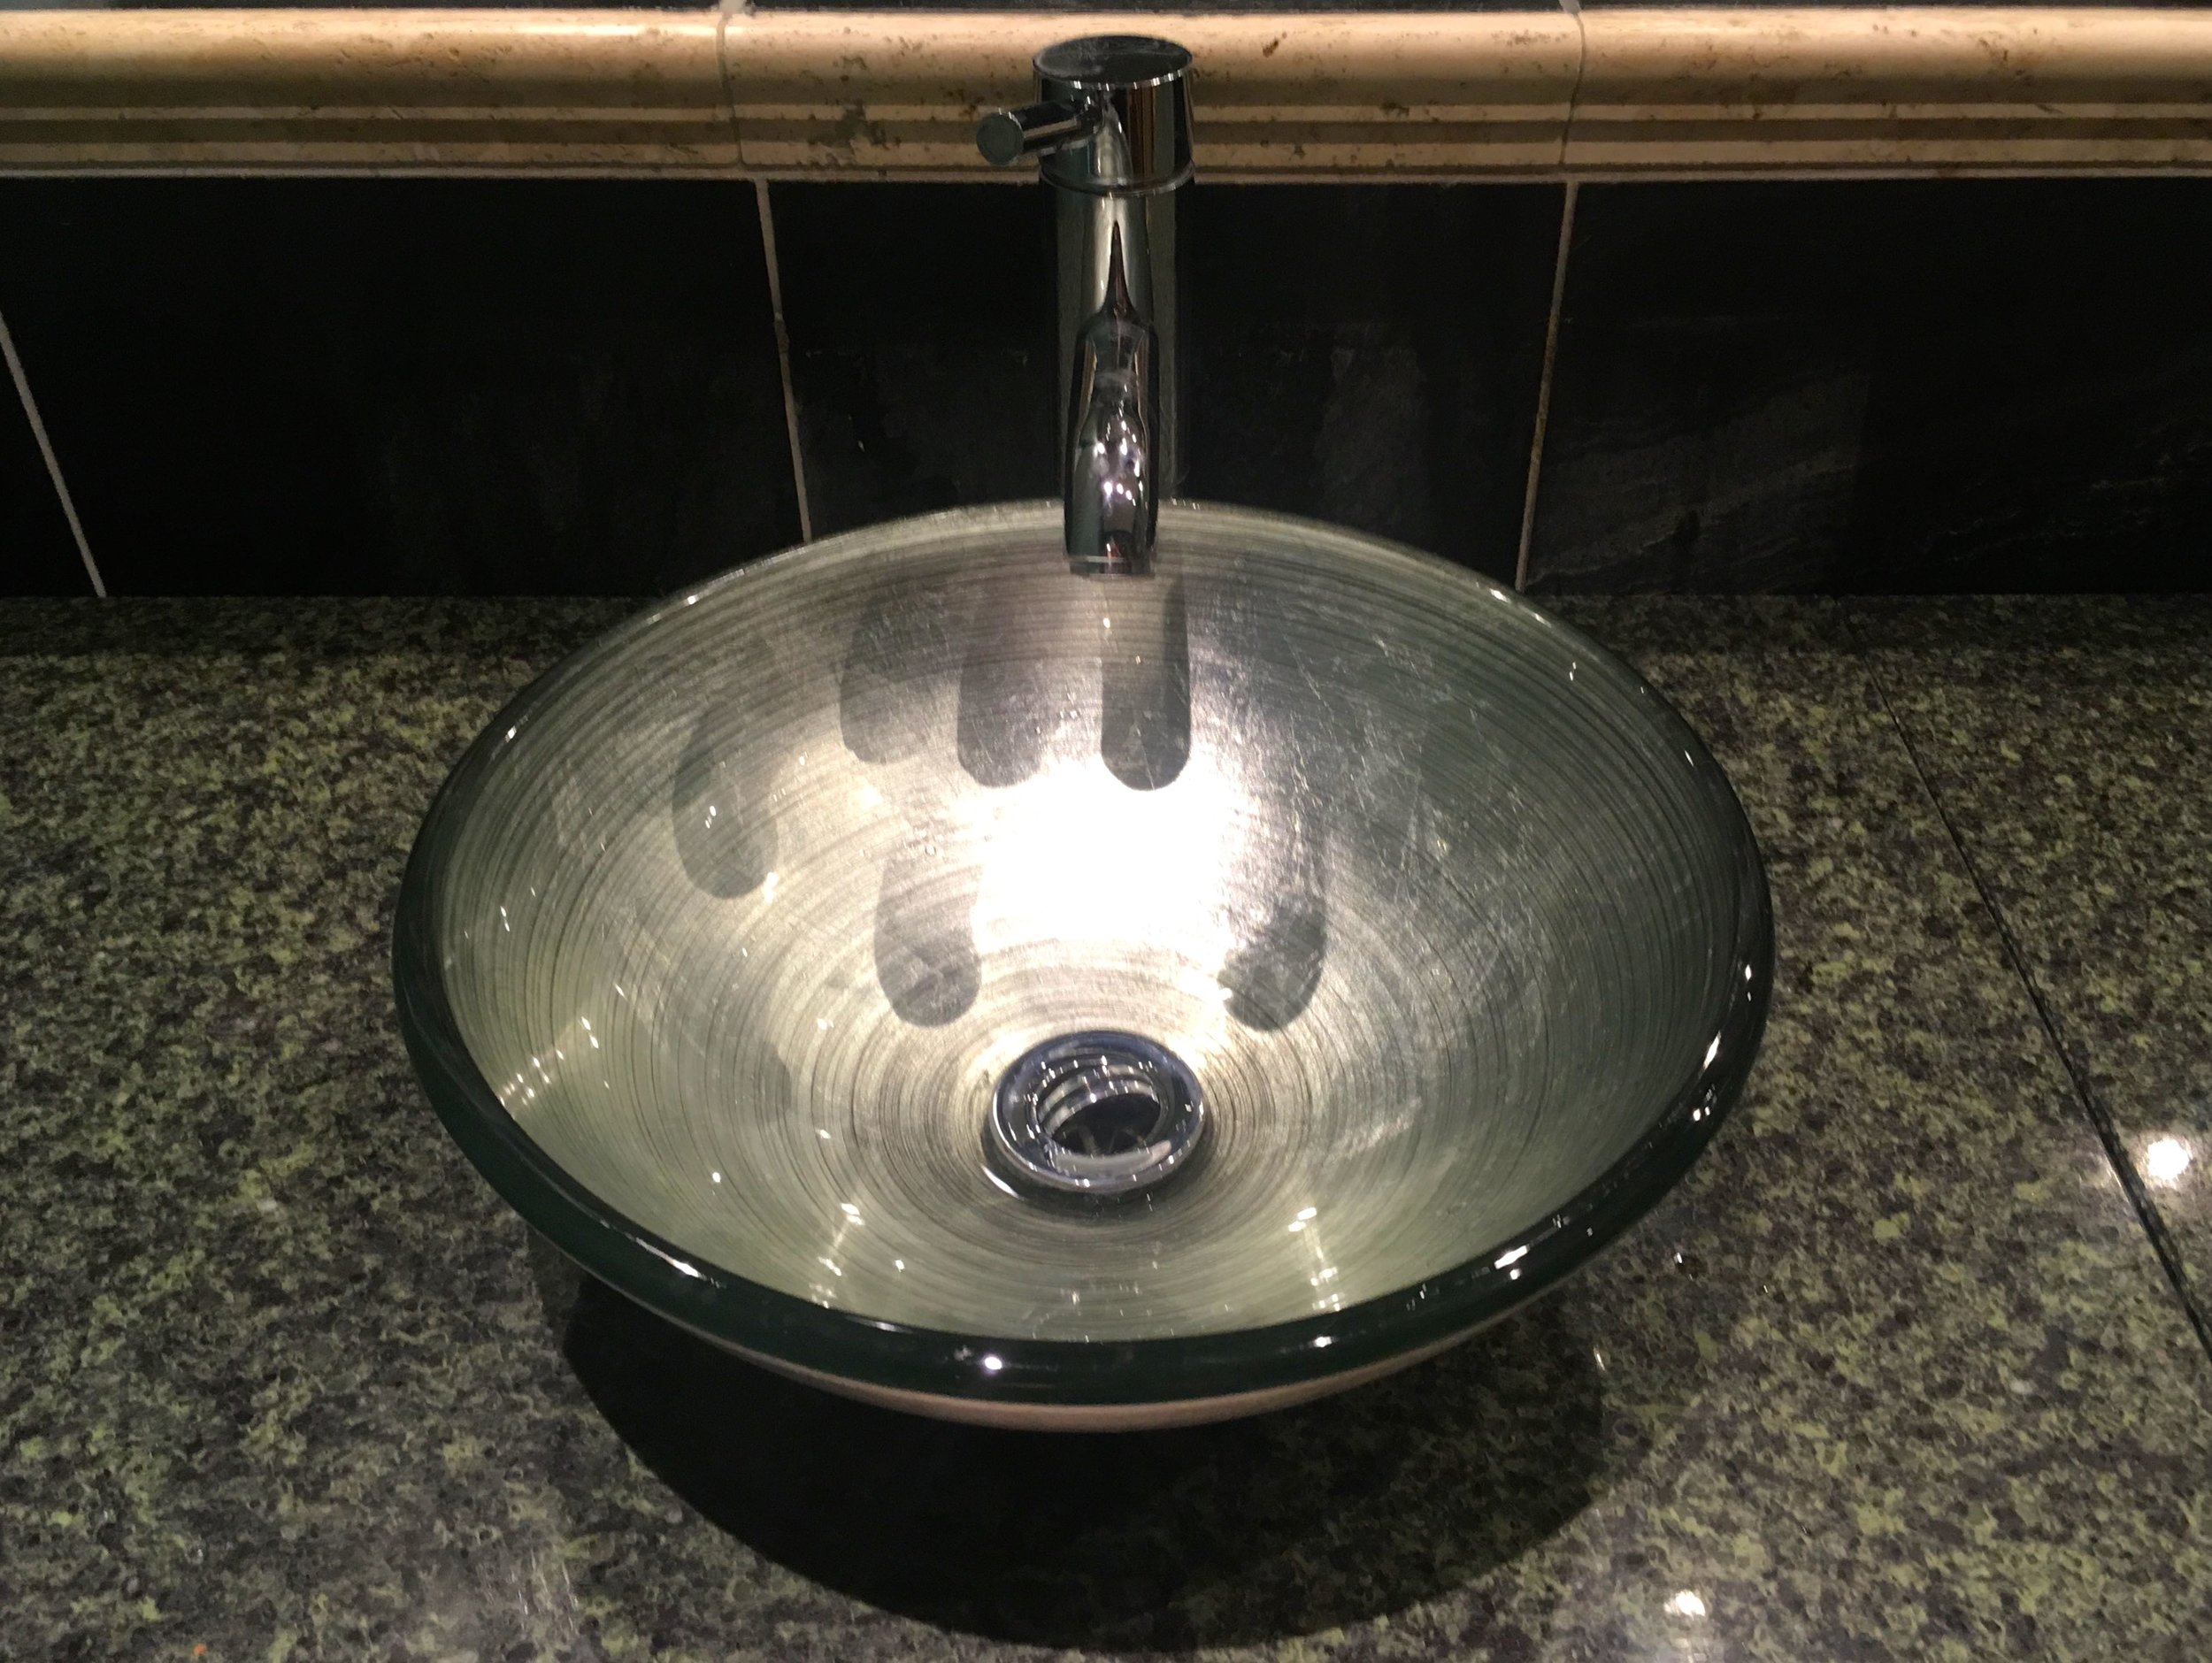 A change in sink too at Alexander's House Hotel